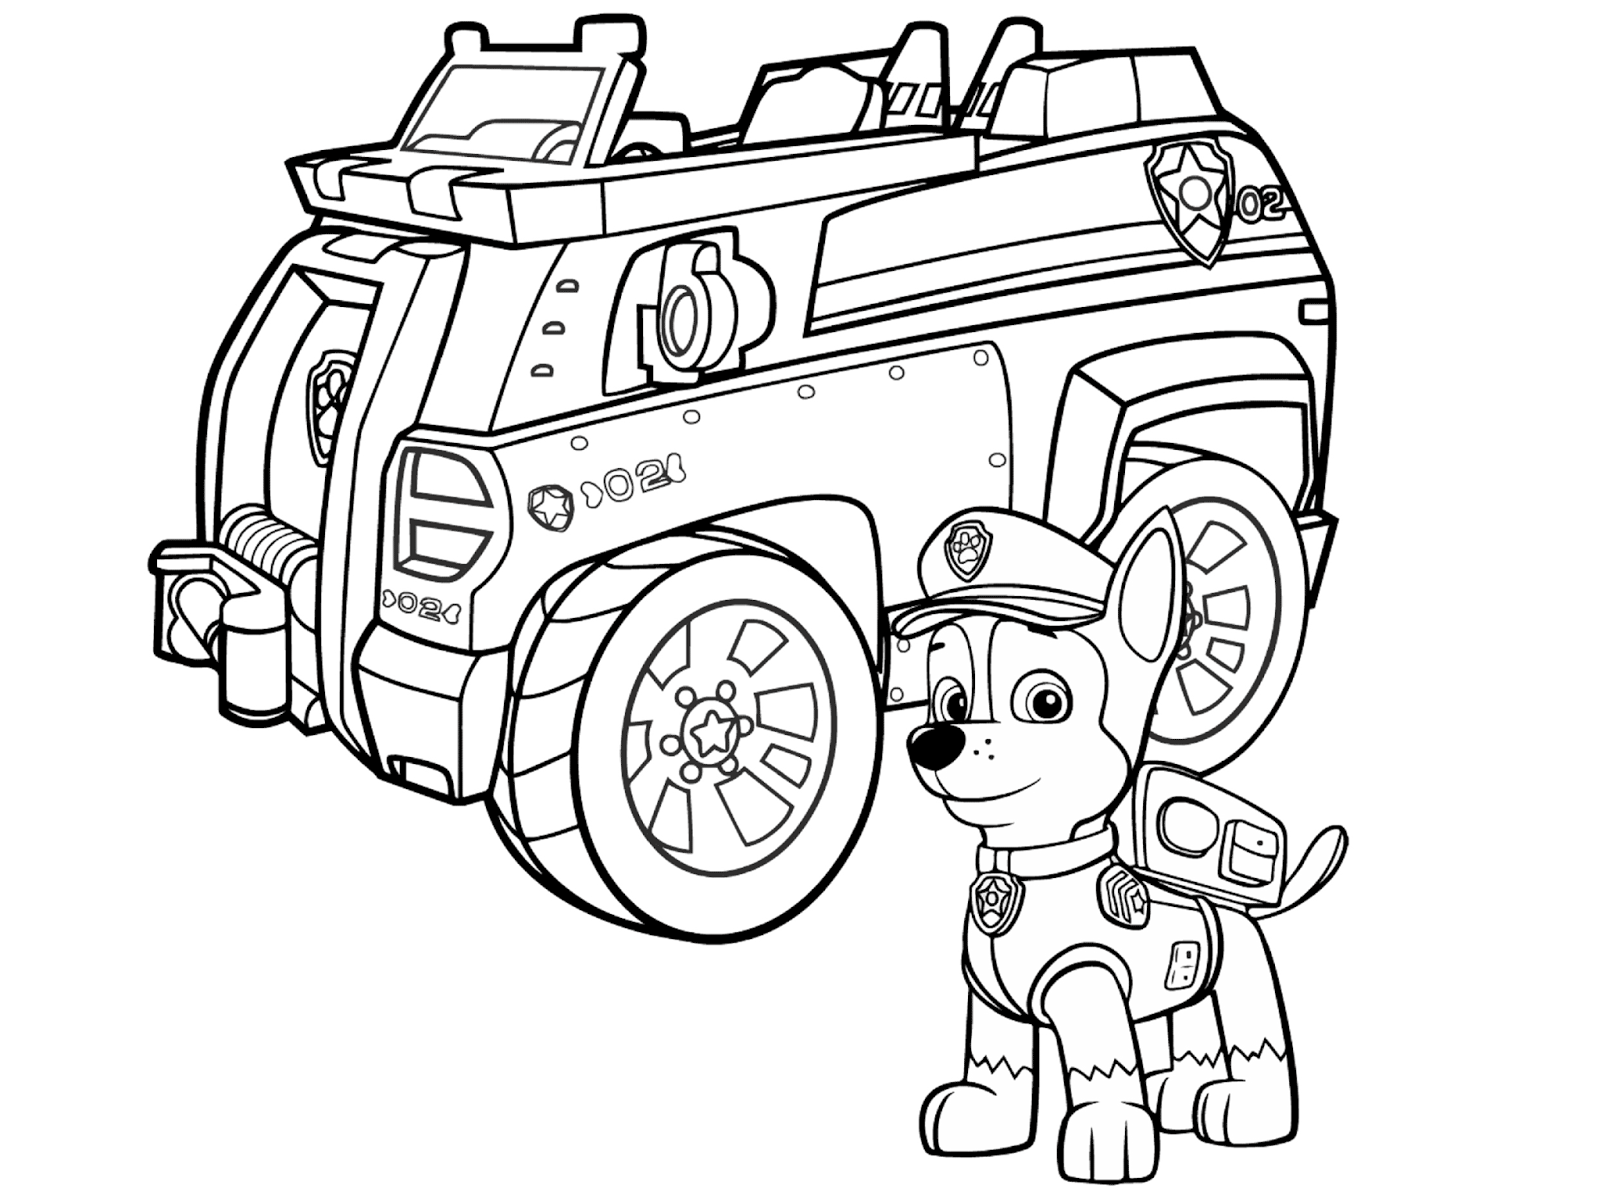 Paw Patrol Coloring Pages Chase Police Car Paw Patrol Coloring Pages Paw Patrol Coloring Truck Coloring Pages